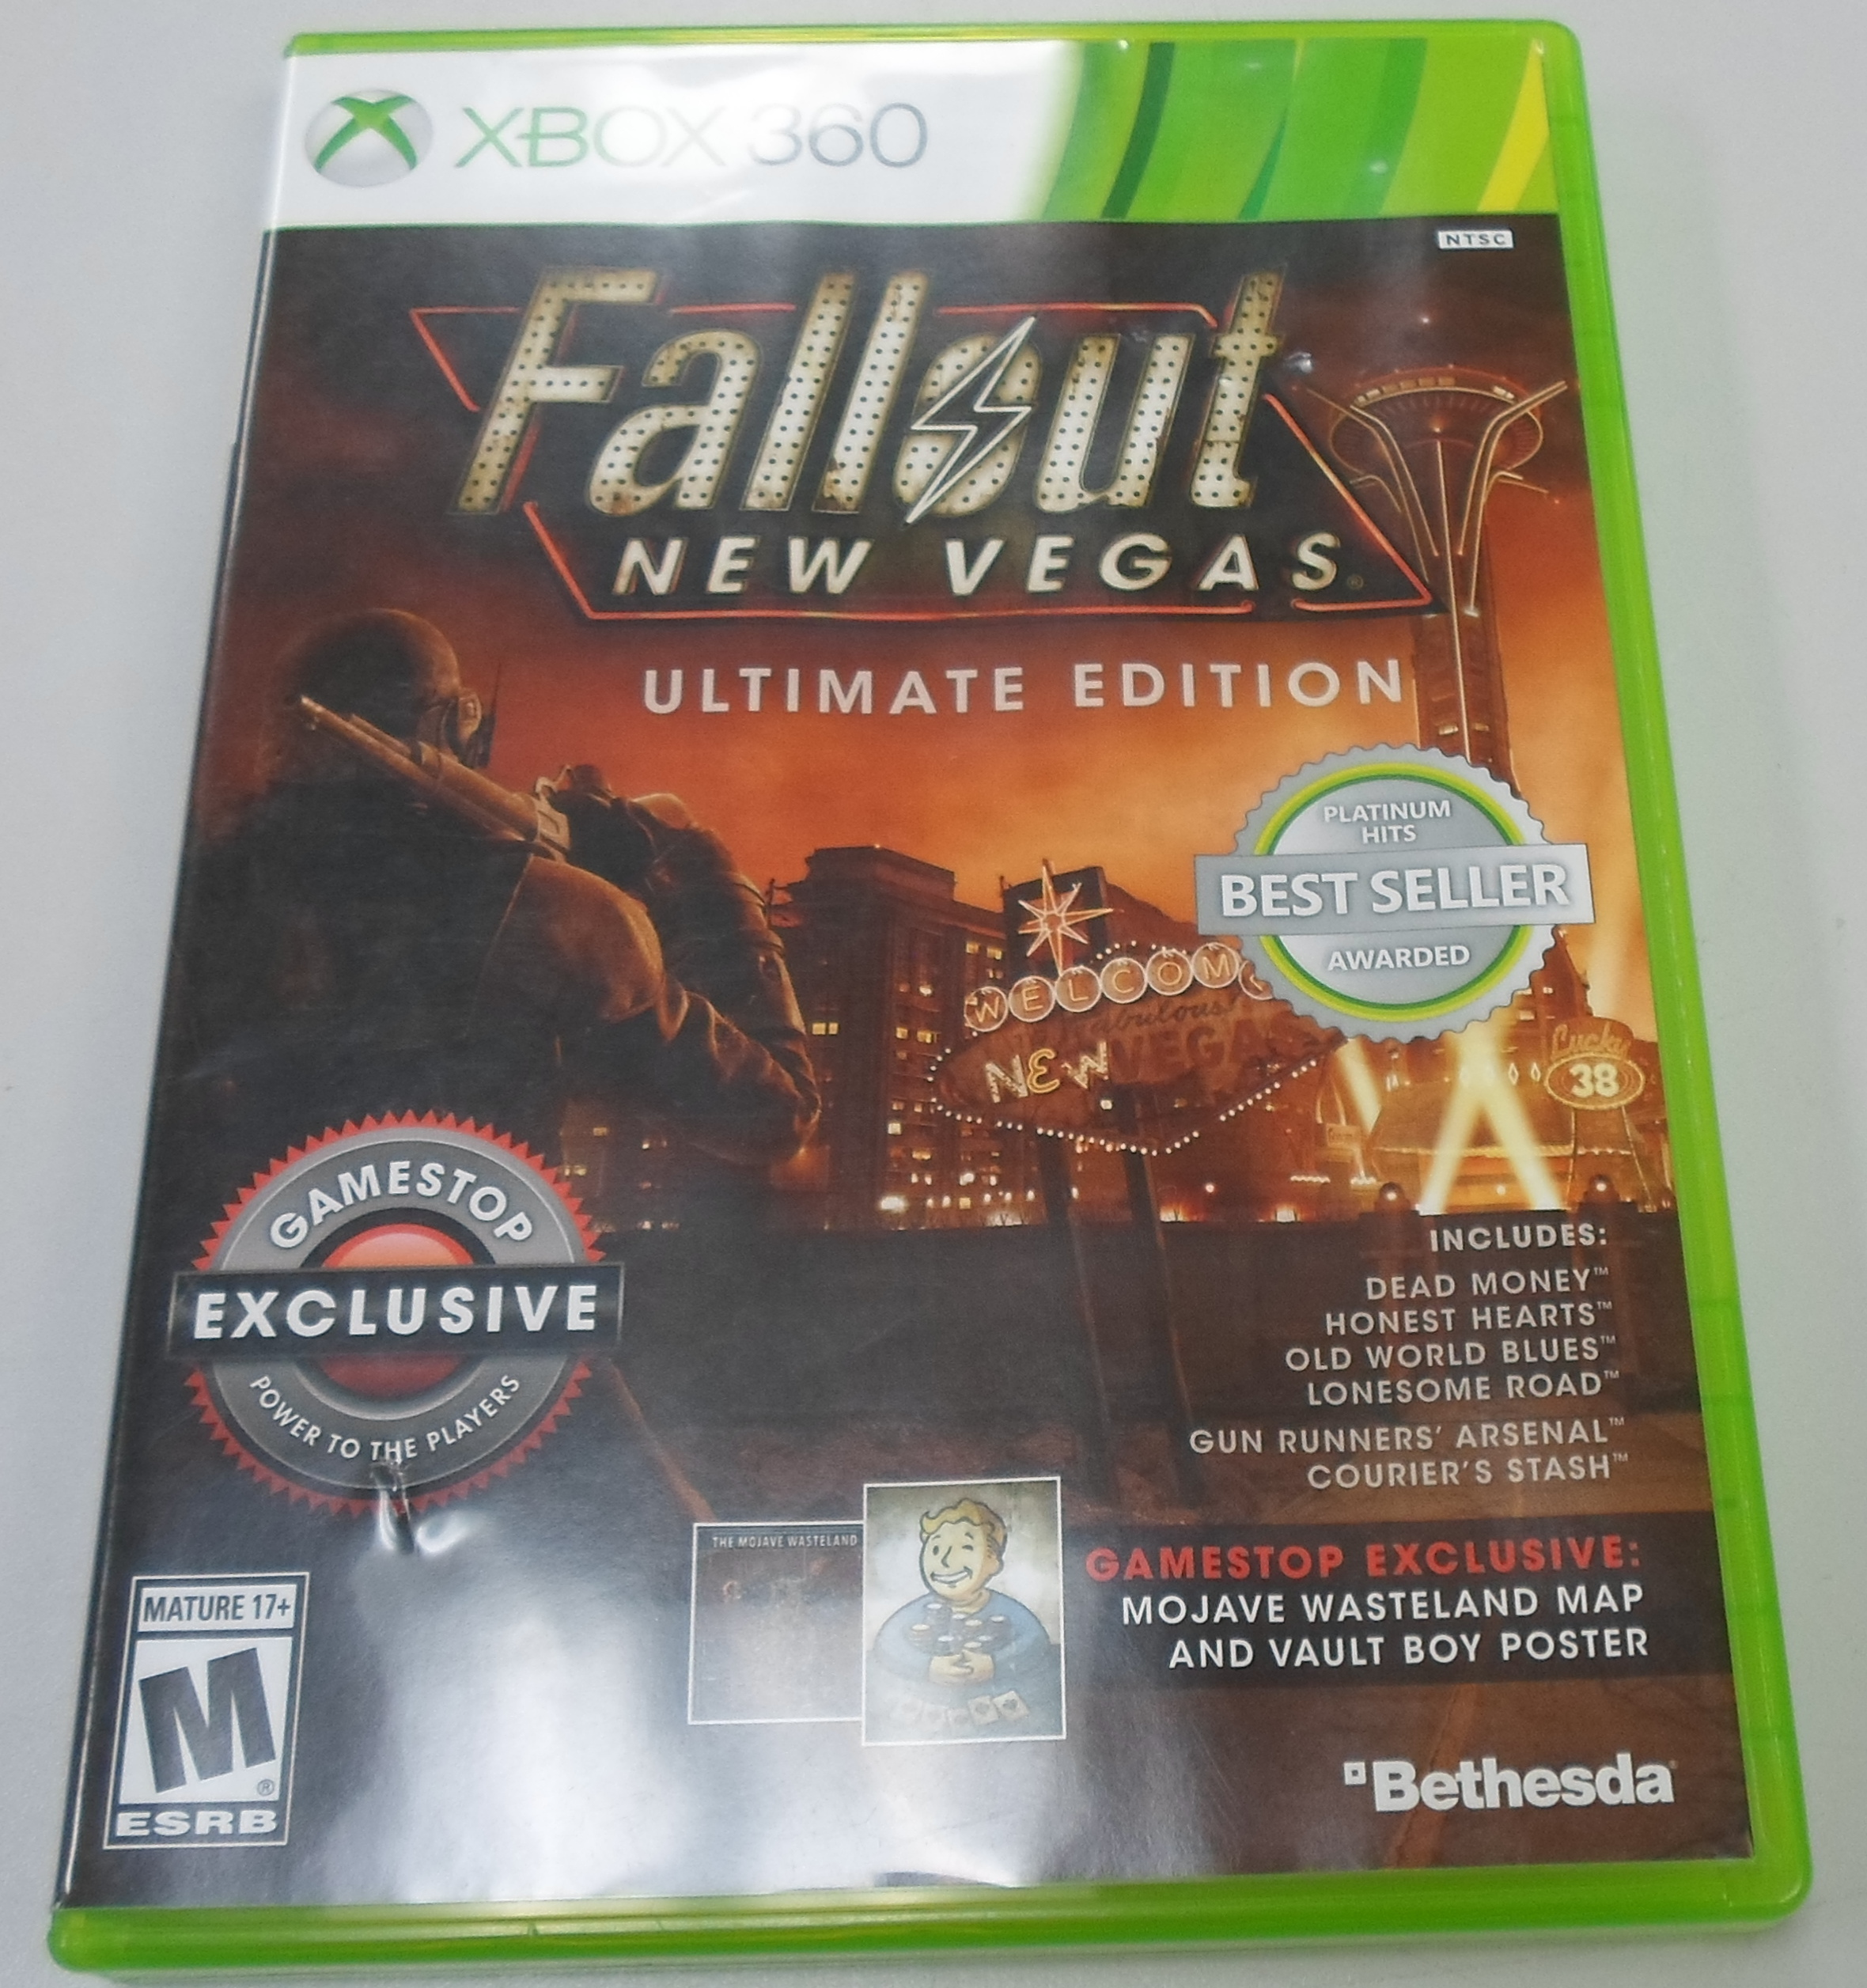 FALL OUT NEW VEGAS: ULTIMATE EDITION  - XBOX 360 GAME